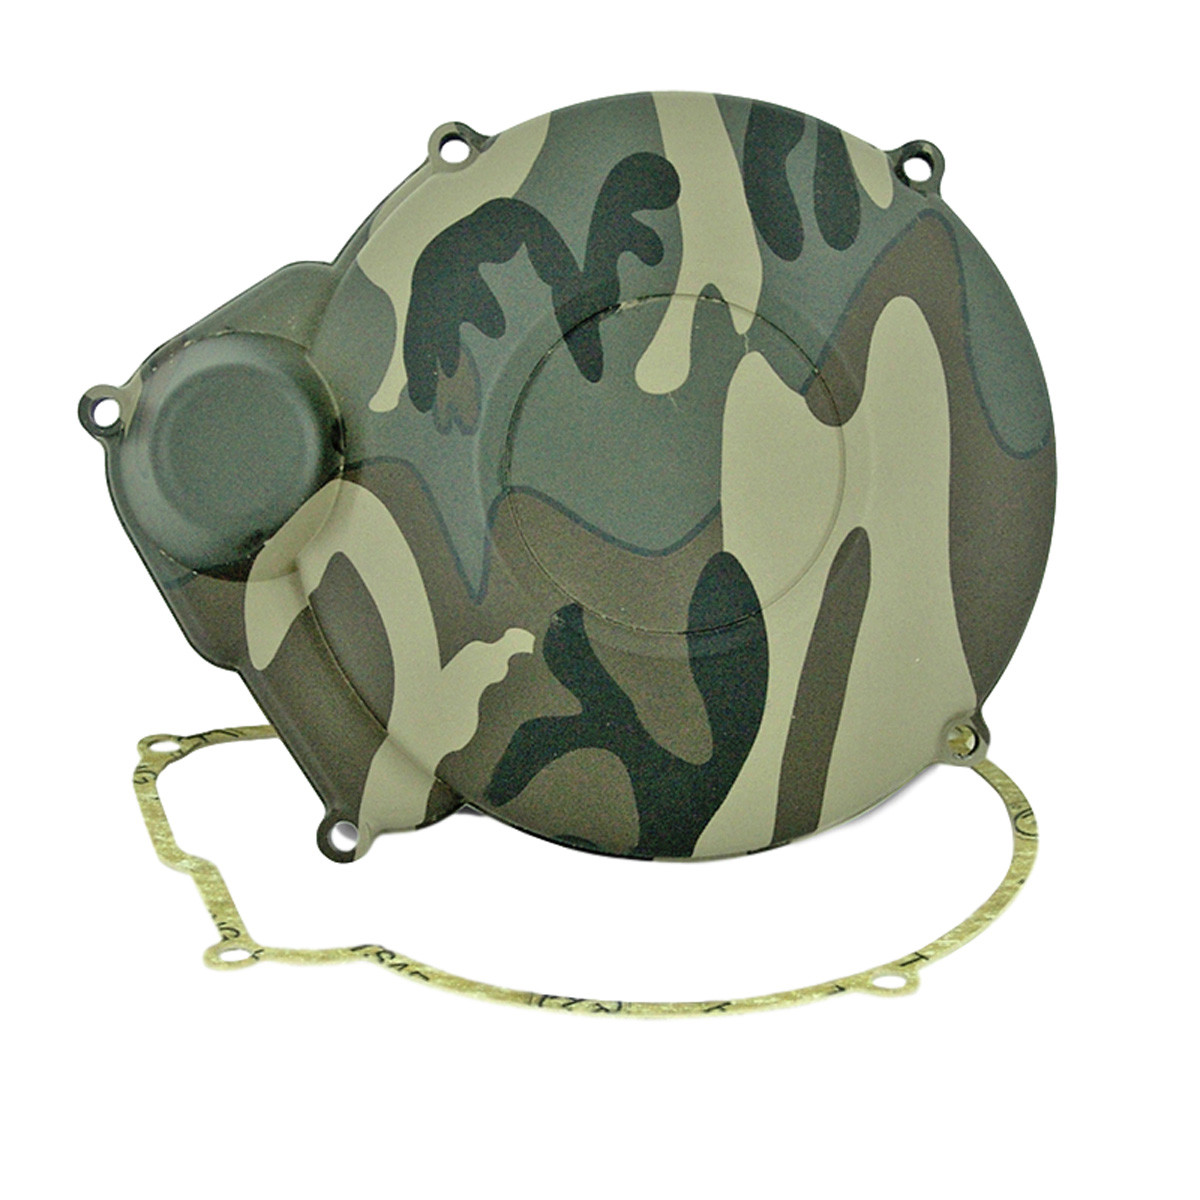 Carter Allumage AM6 - Camouflage